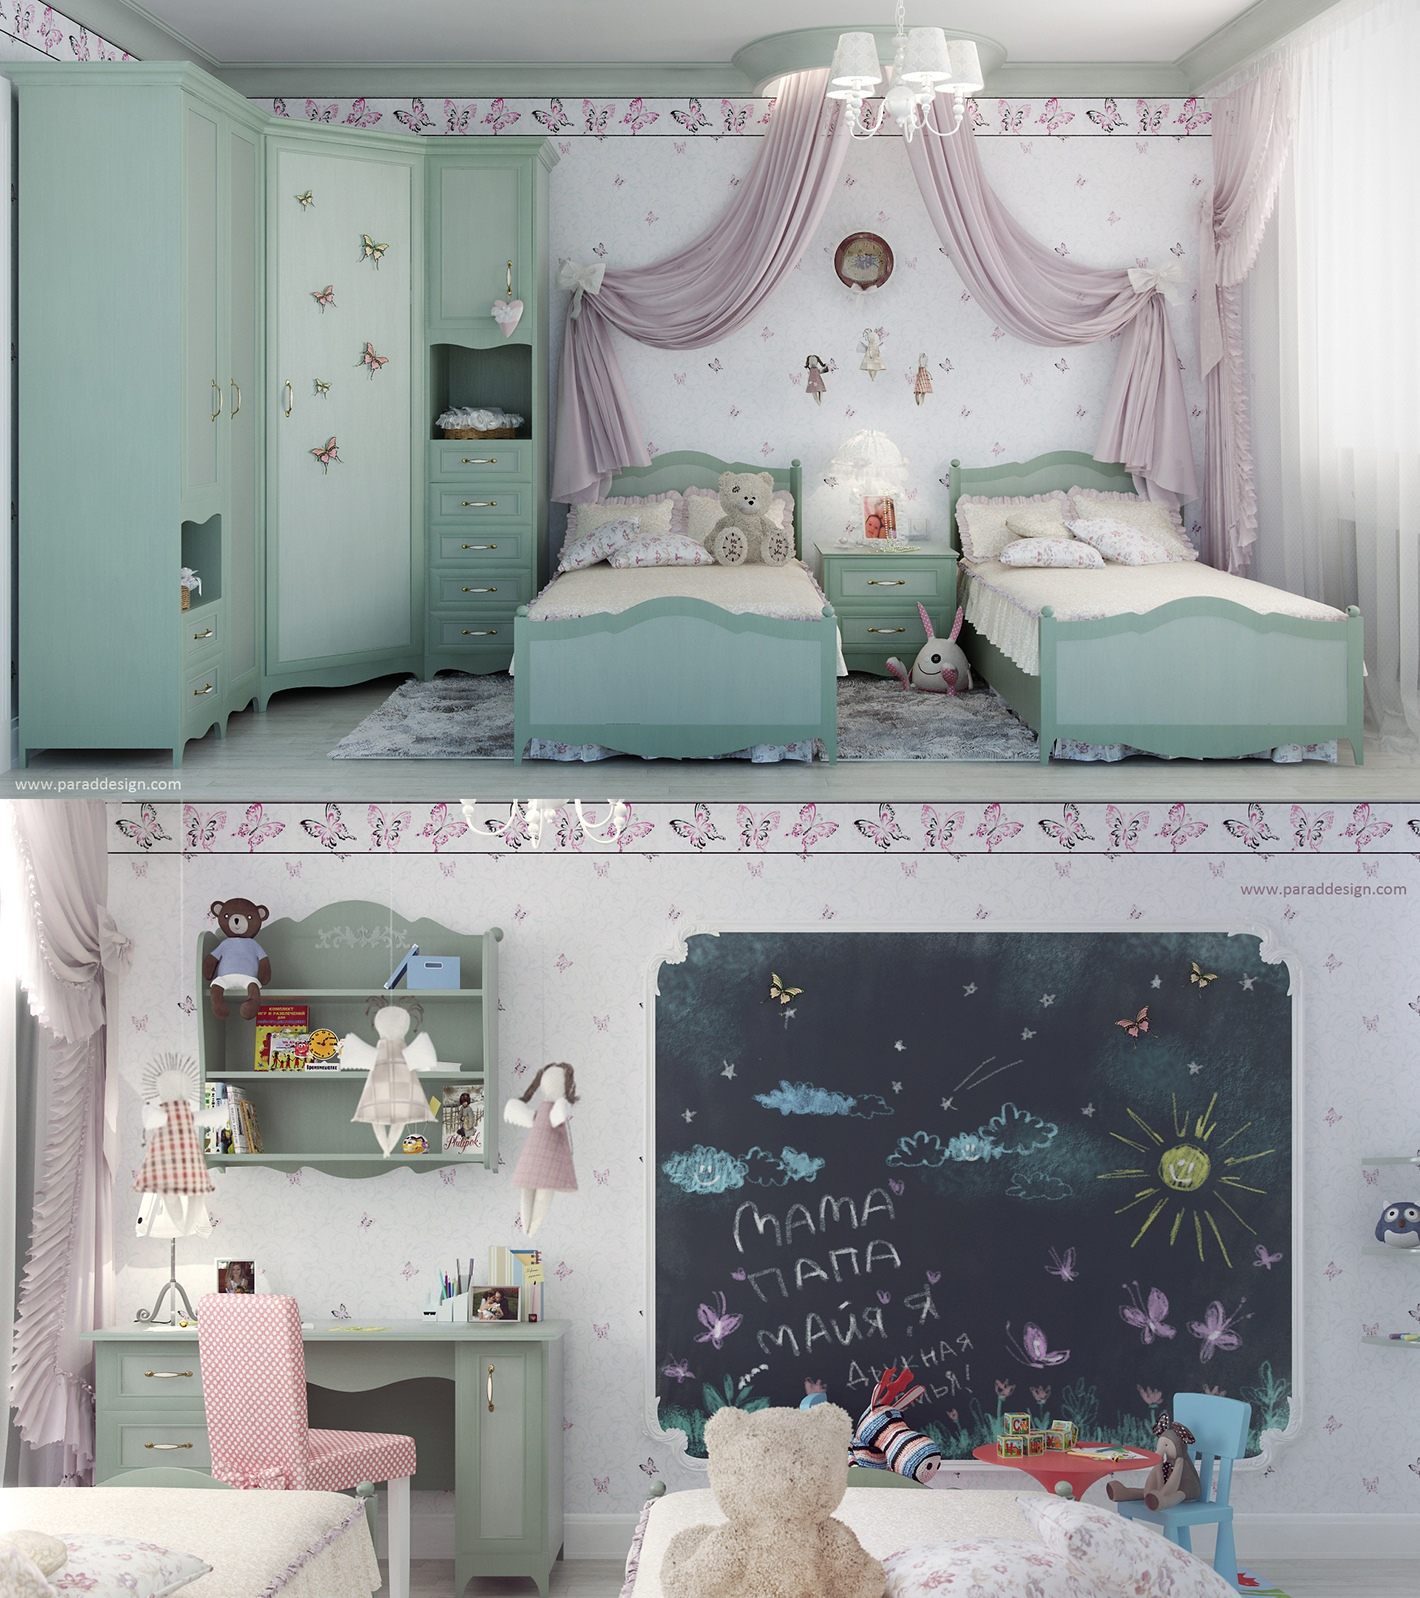 2 little girls bedroom 7 interior design ideas Girls bedroom ideas pictures